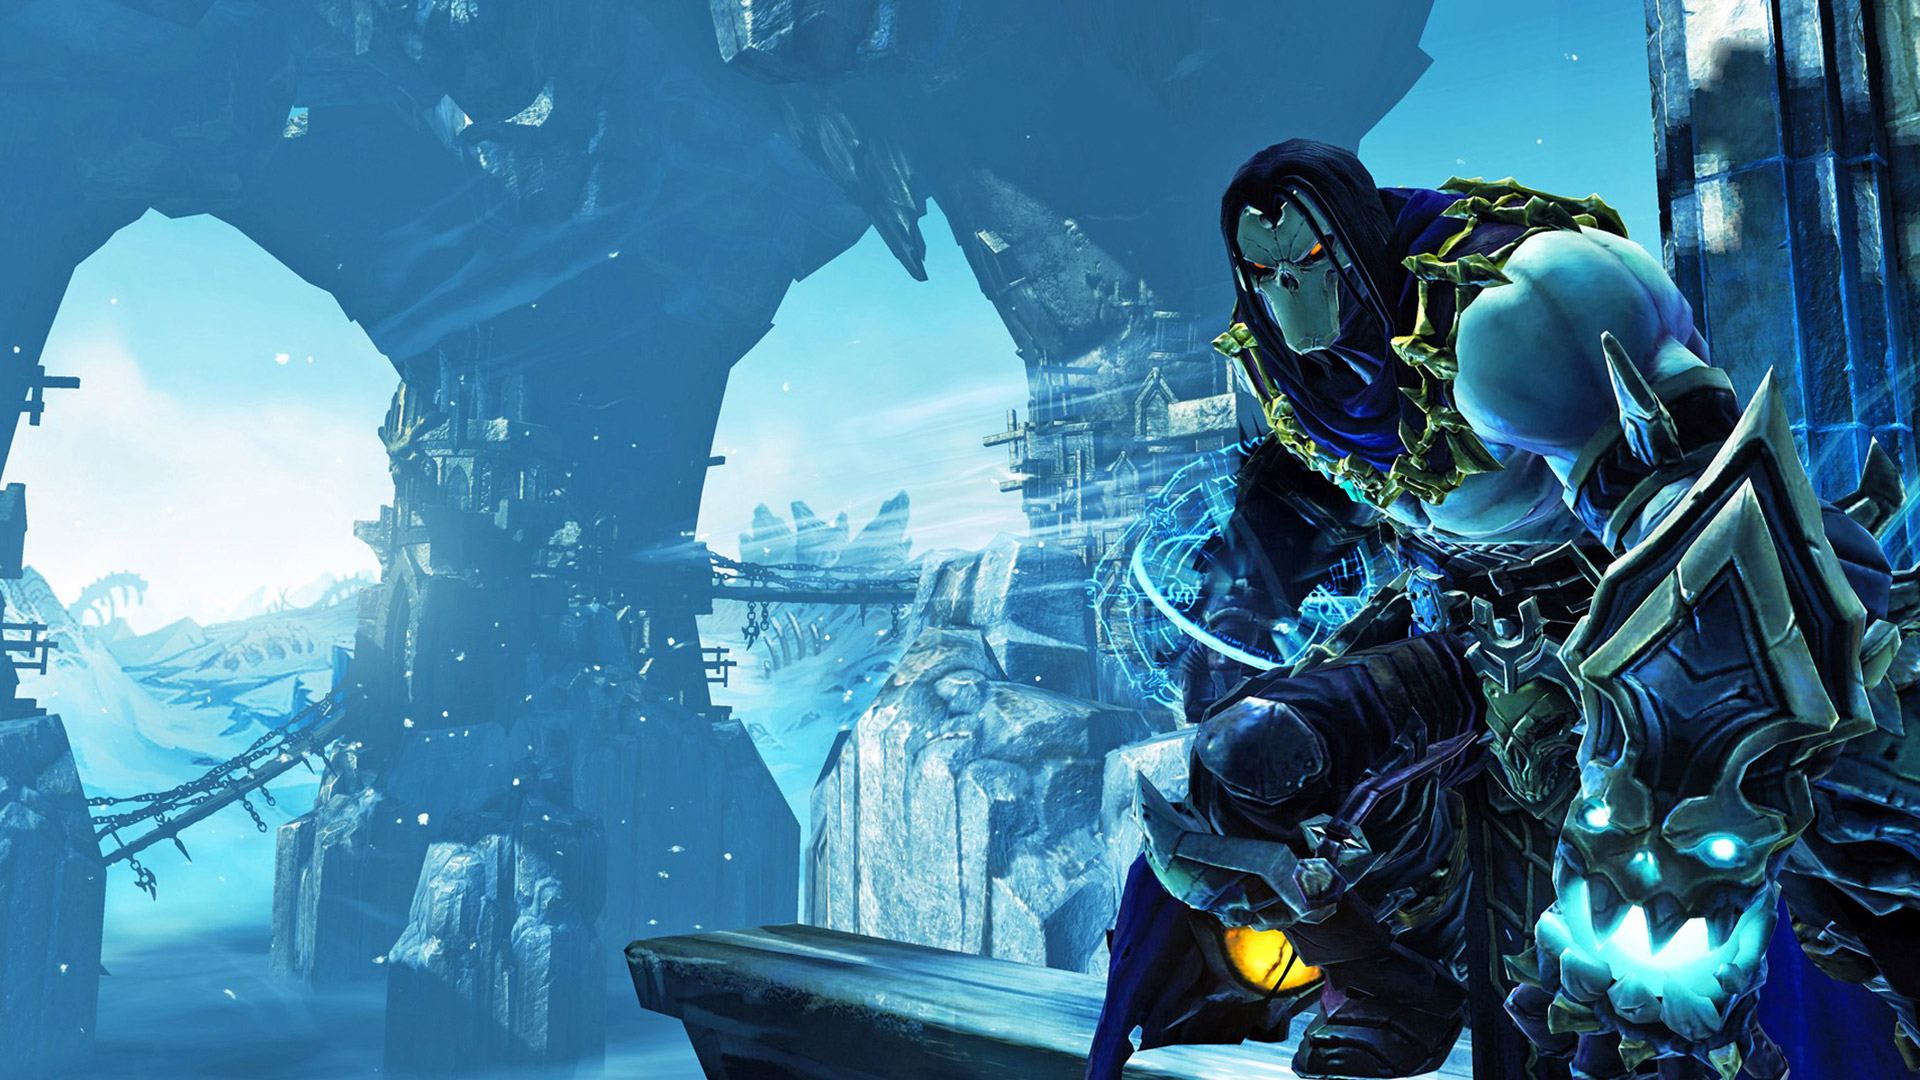 Free Darksiders II Wallpaper in 1920x1080